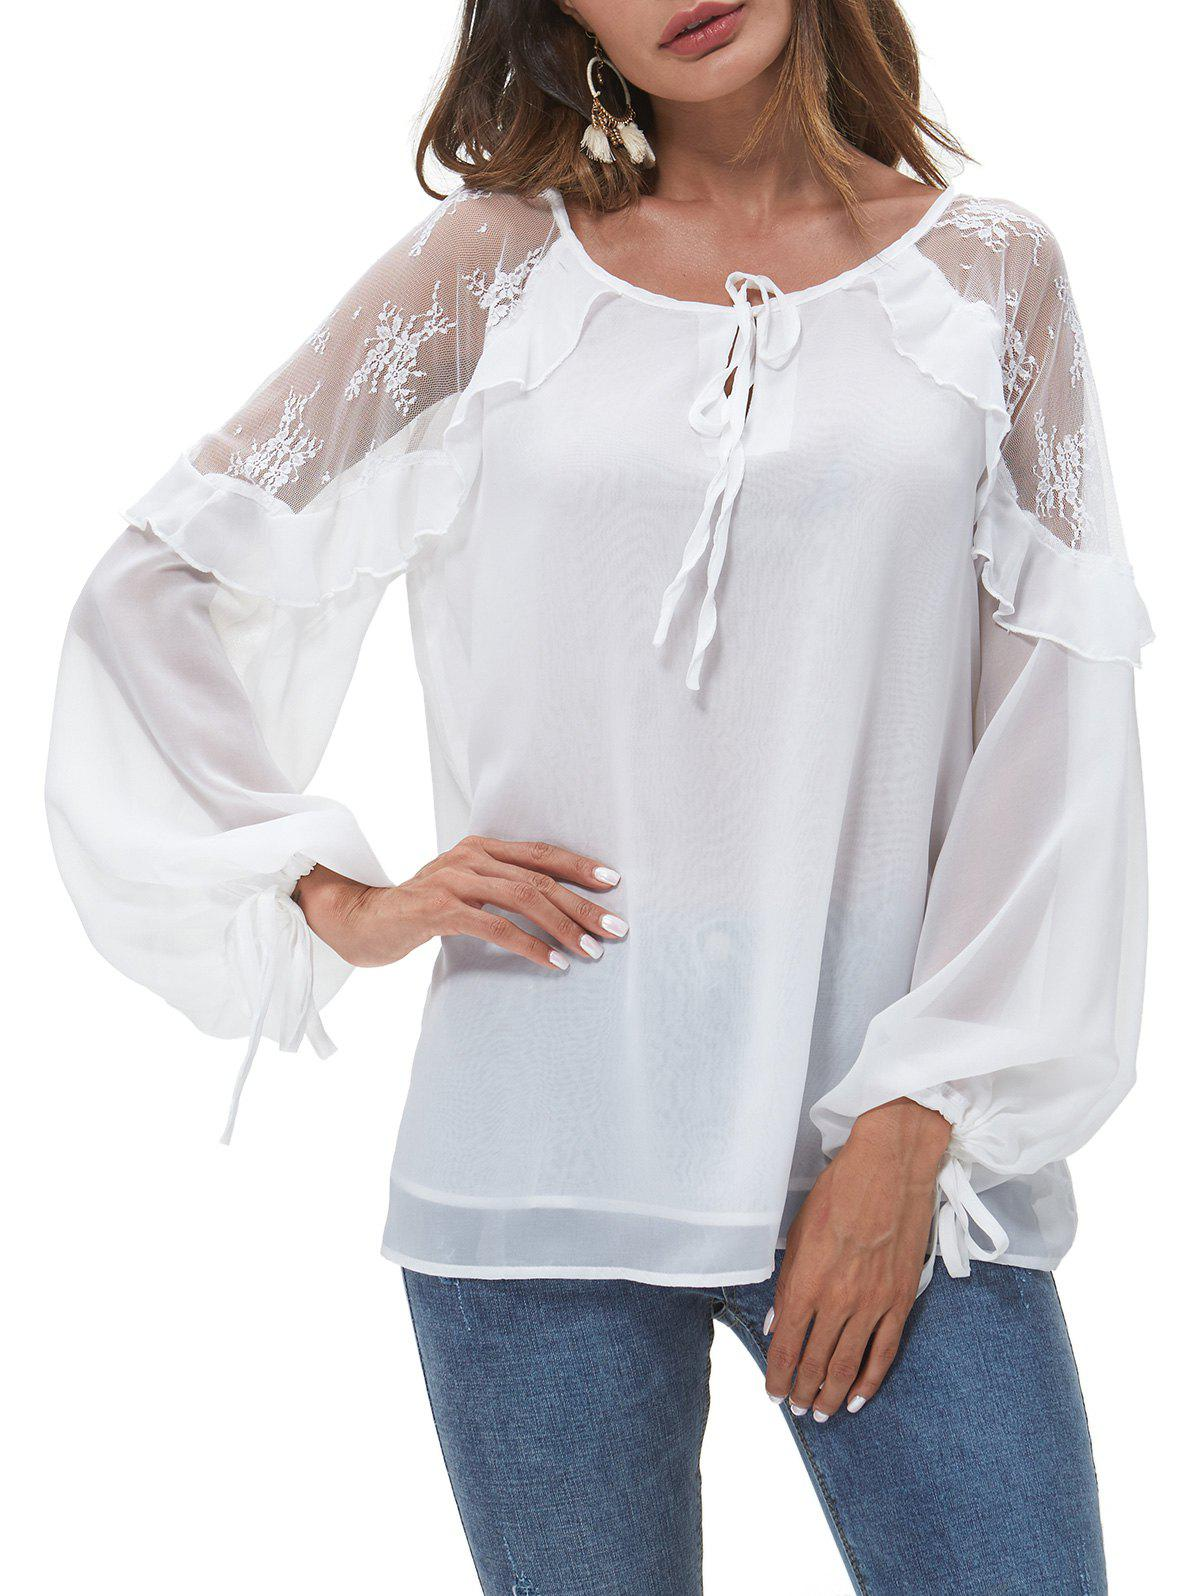 Lace Panel Knotted Layered Blouse - WHITE XL